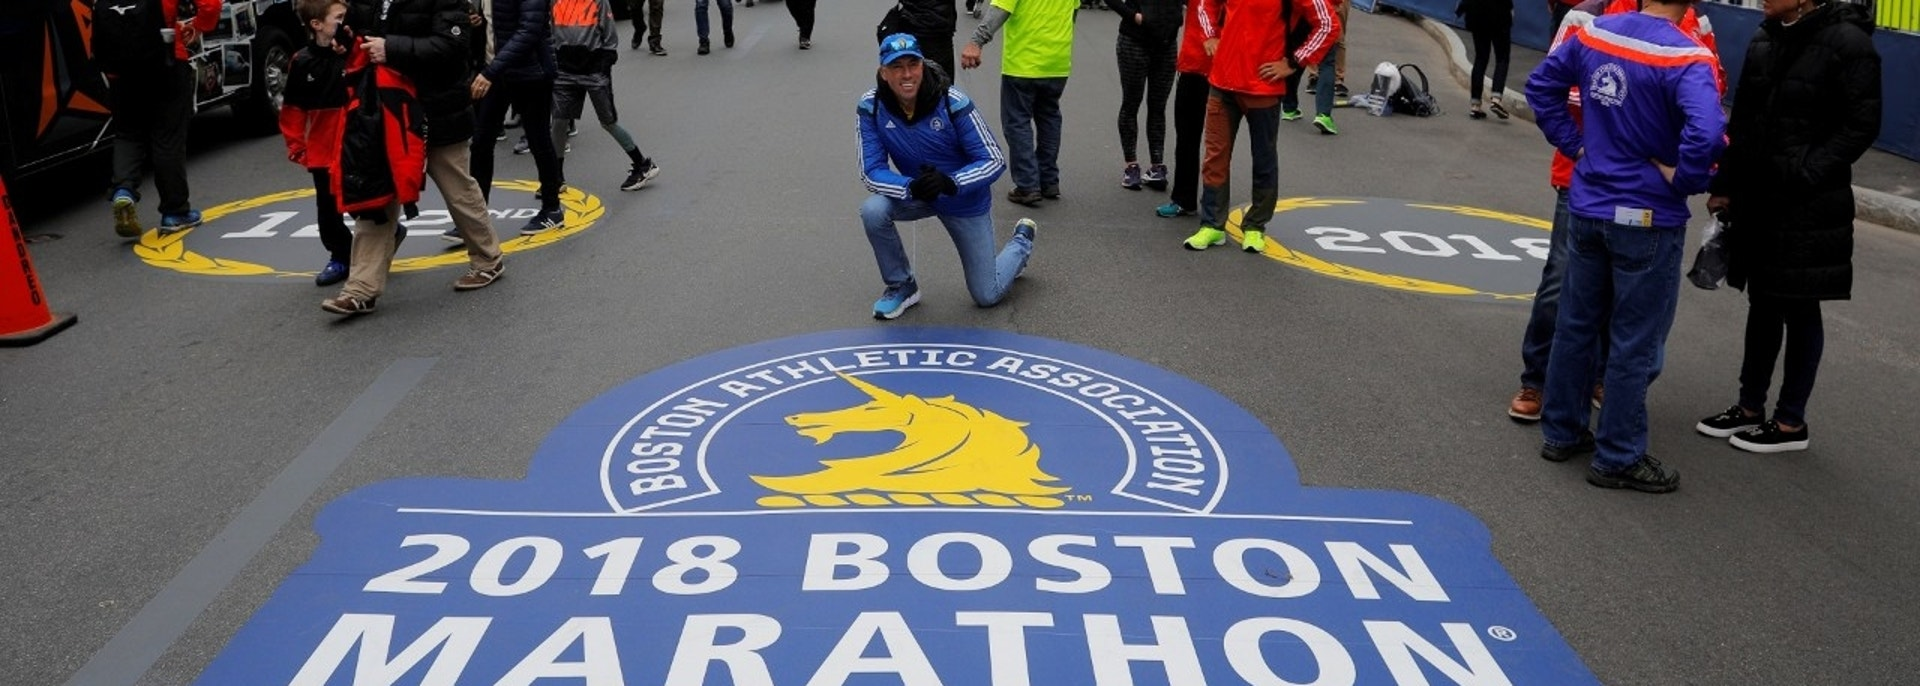 A man poses for a photograph near the finish line ahead of the 122nd edition of the Boston Marathon and the 5th anniversary of the Boston Marathon bombings in Boston, Massachusetts, U.S., April 14, 2018. REUTERS/Brian Snyder - RC1FBD8FE290